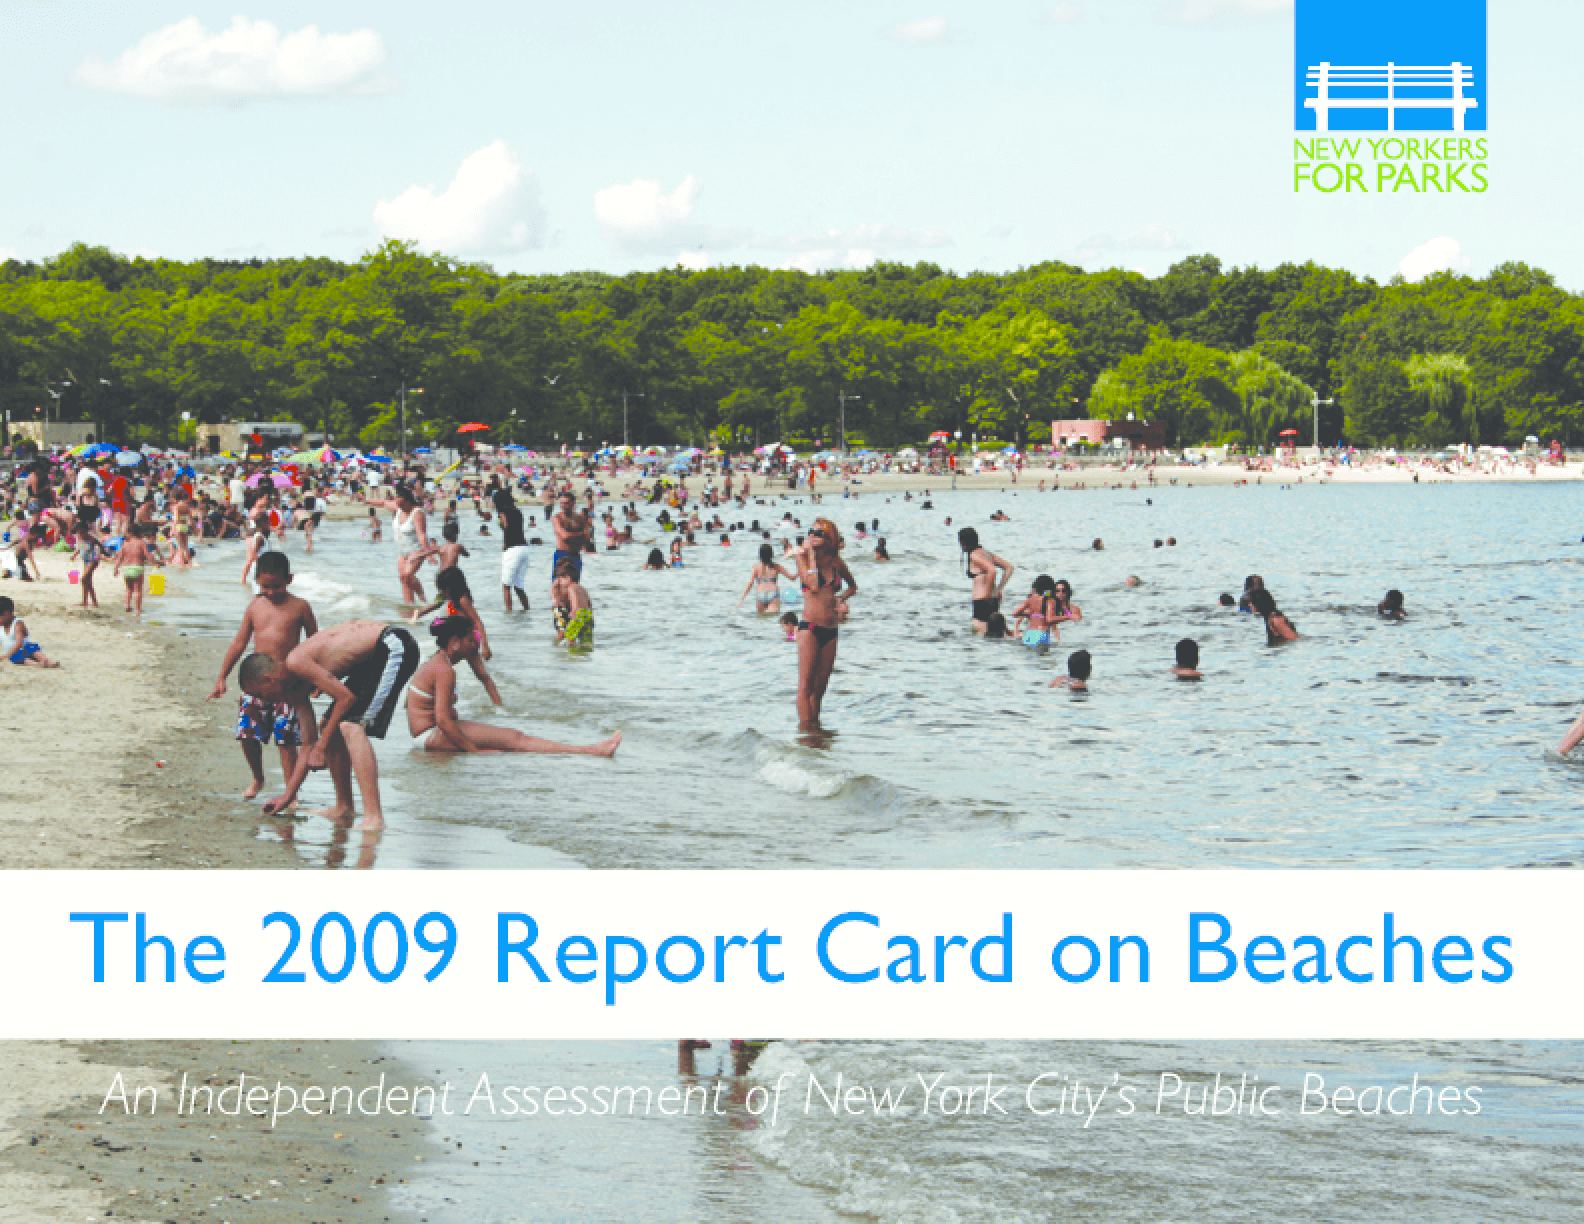 2009 Report Card on Beaches: An Independent Assessment of New York City's Public Beaches